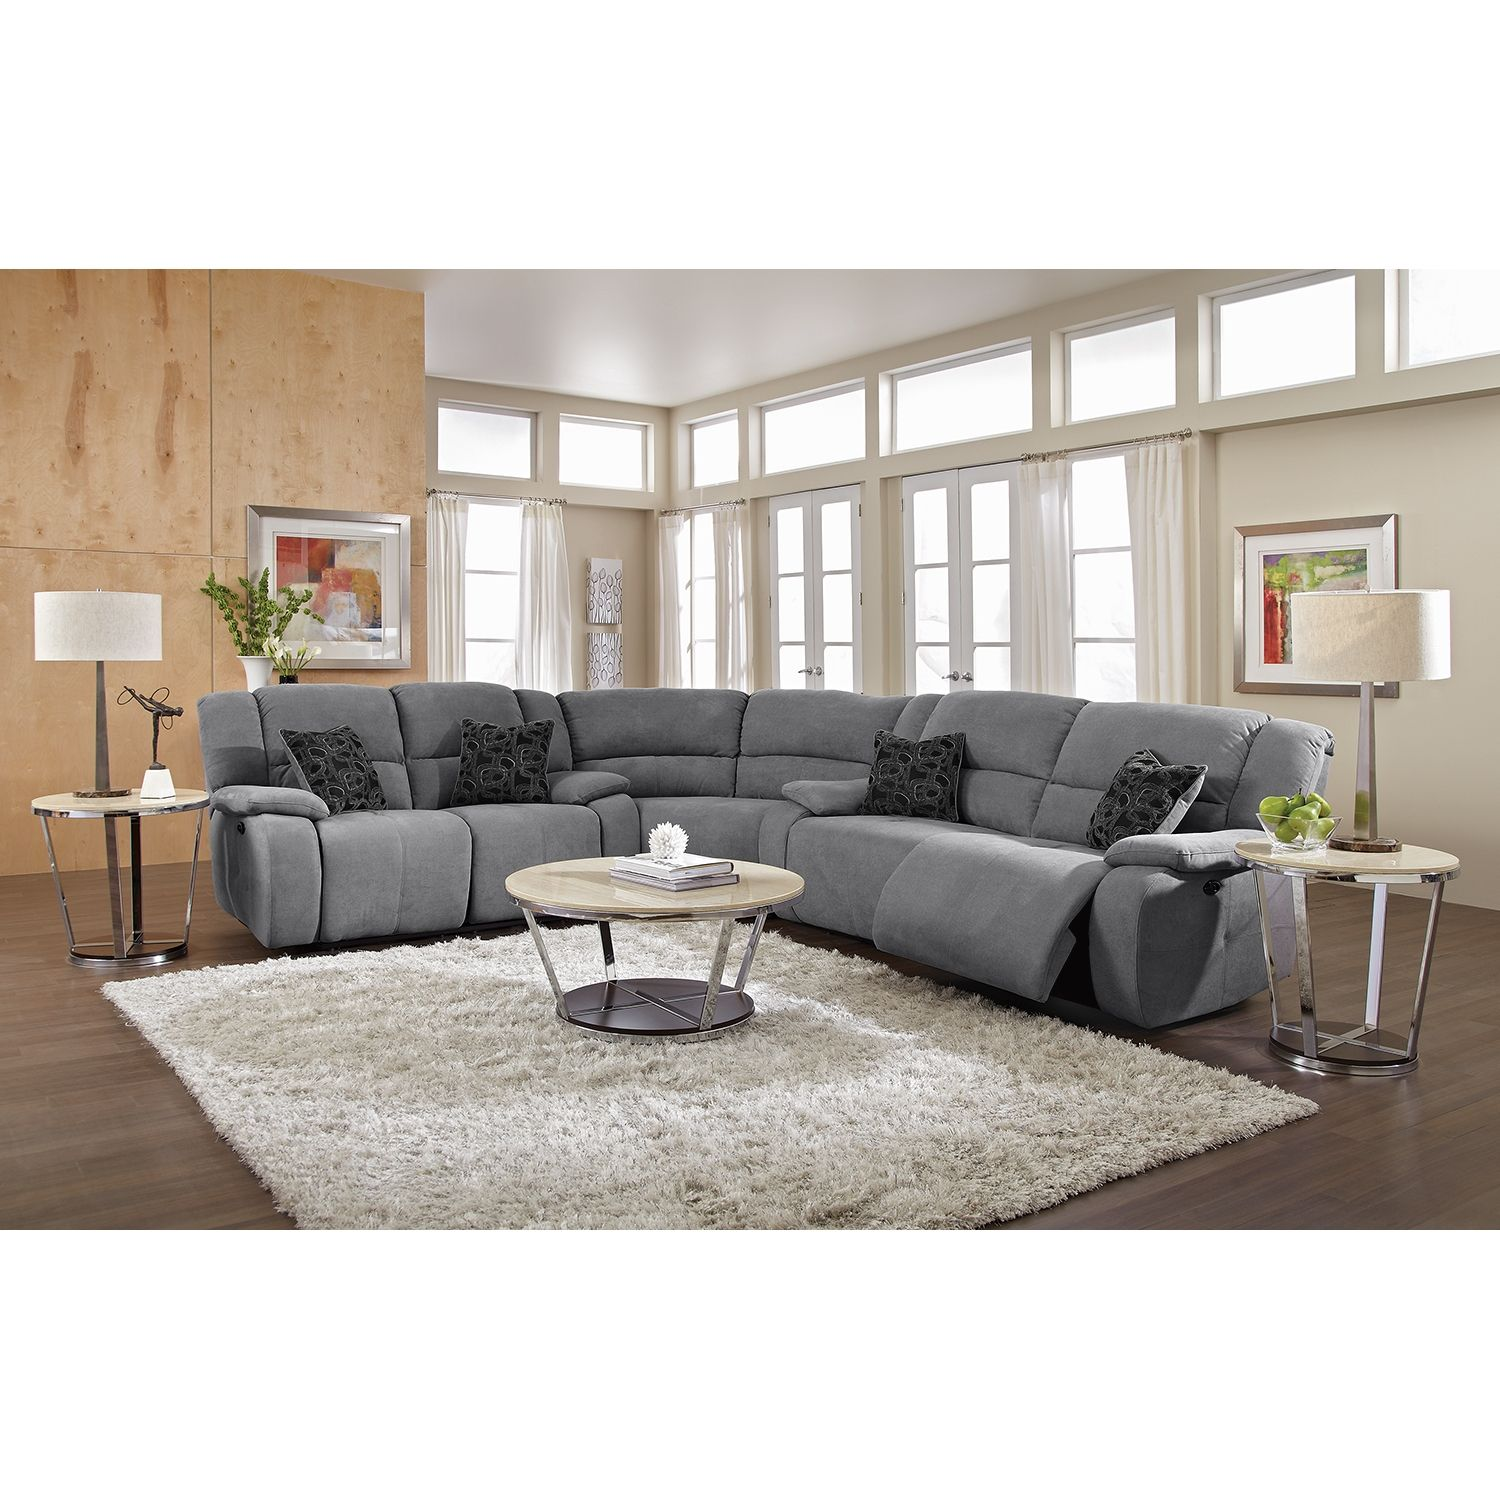 Love this couch gray is awesome future living room for Living room gray couch